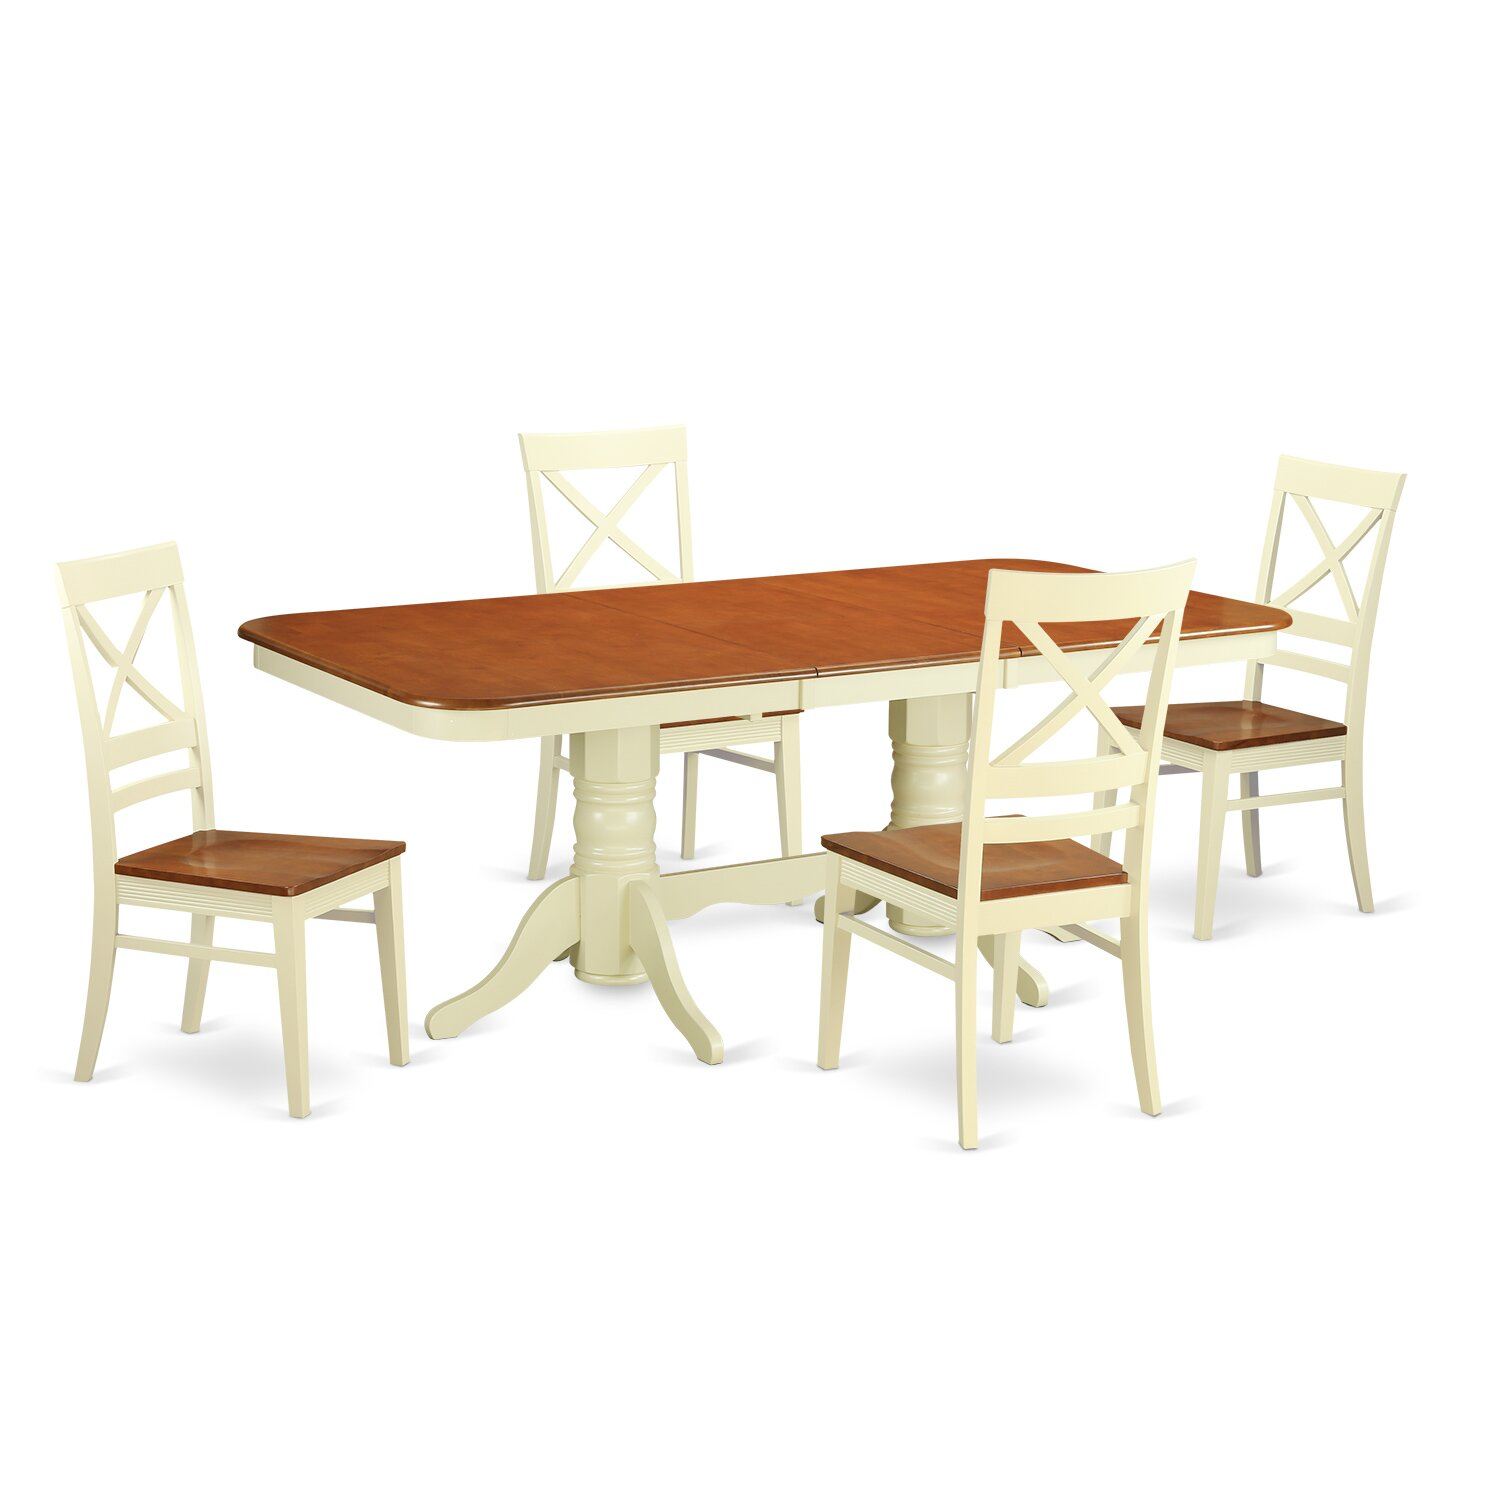 Wooden importers napoleon 5 piece dining set wayfair for 5 piece dining set